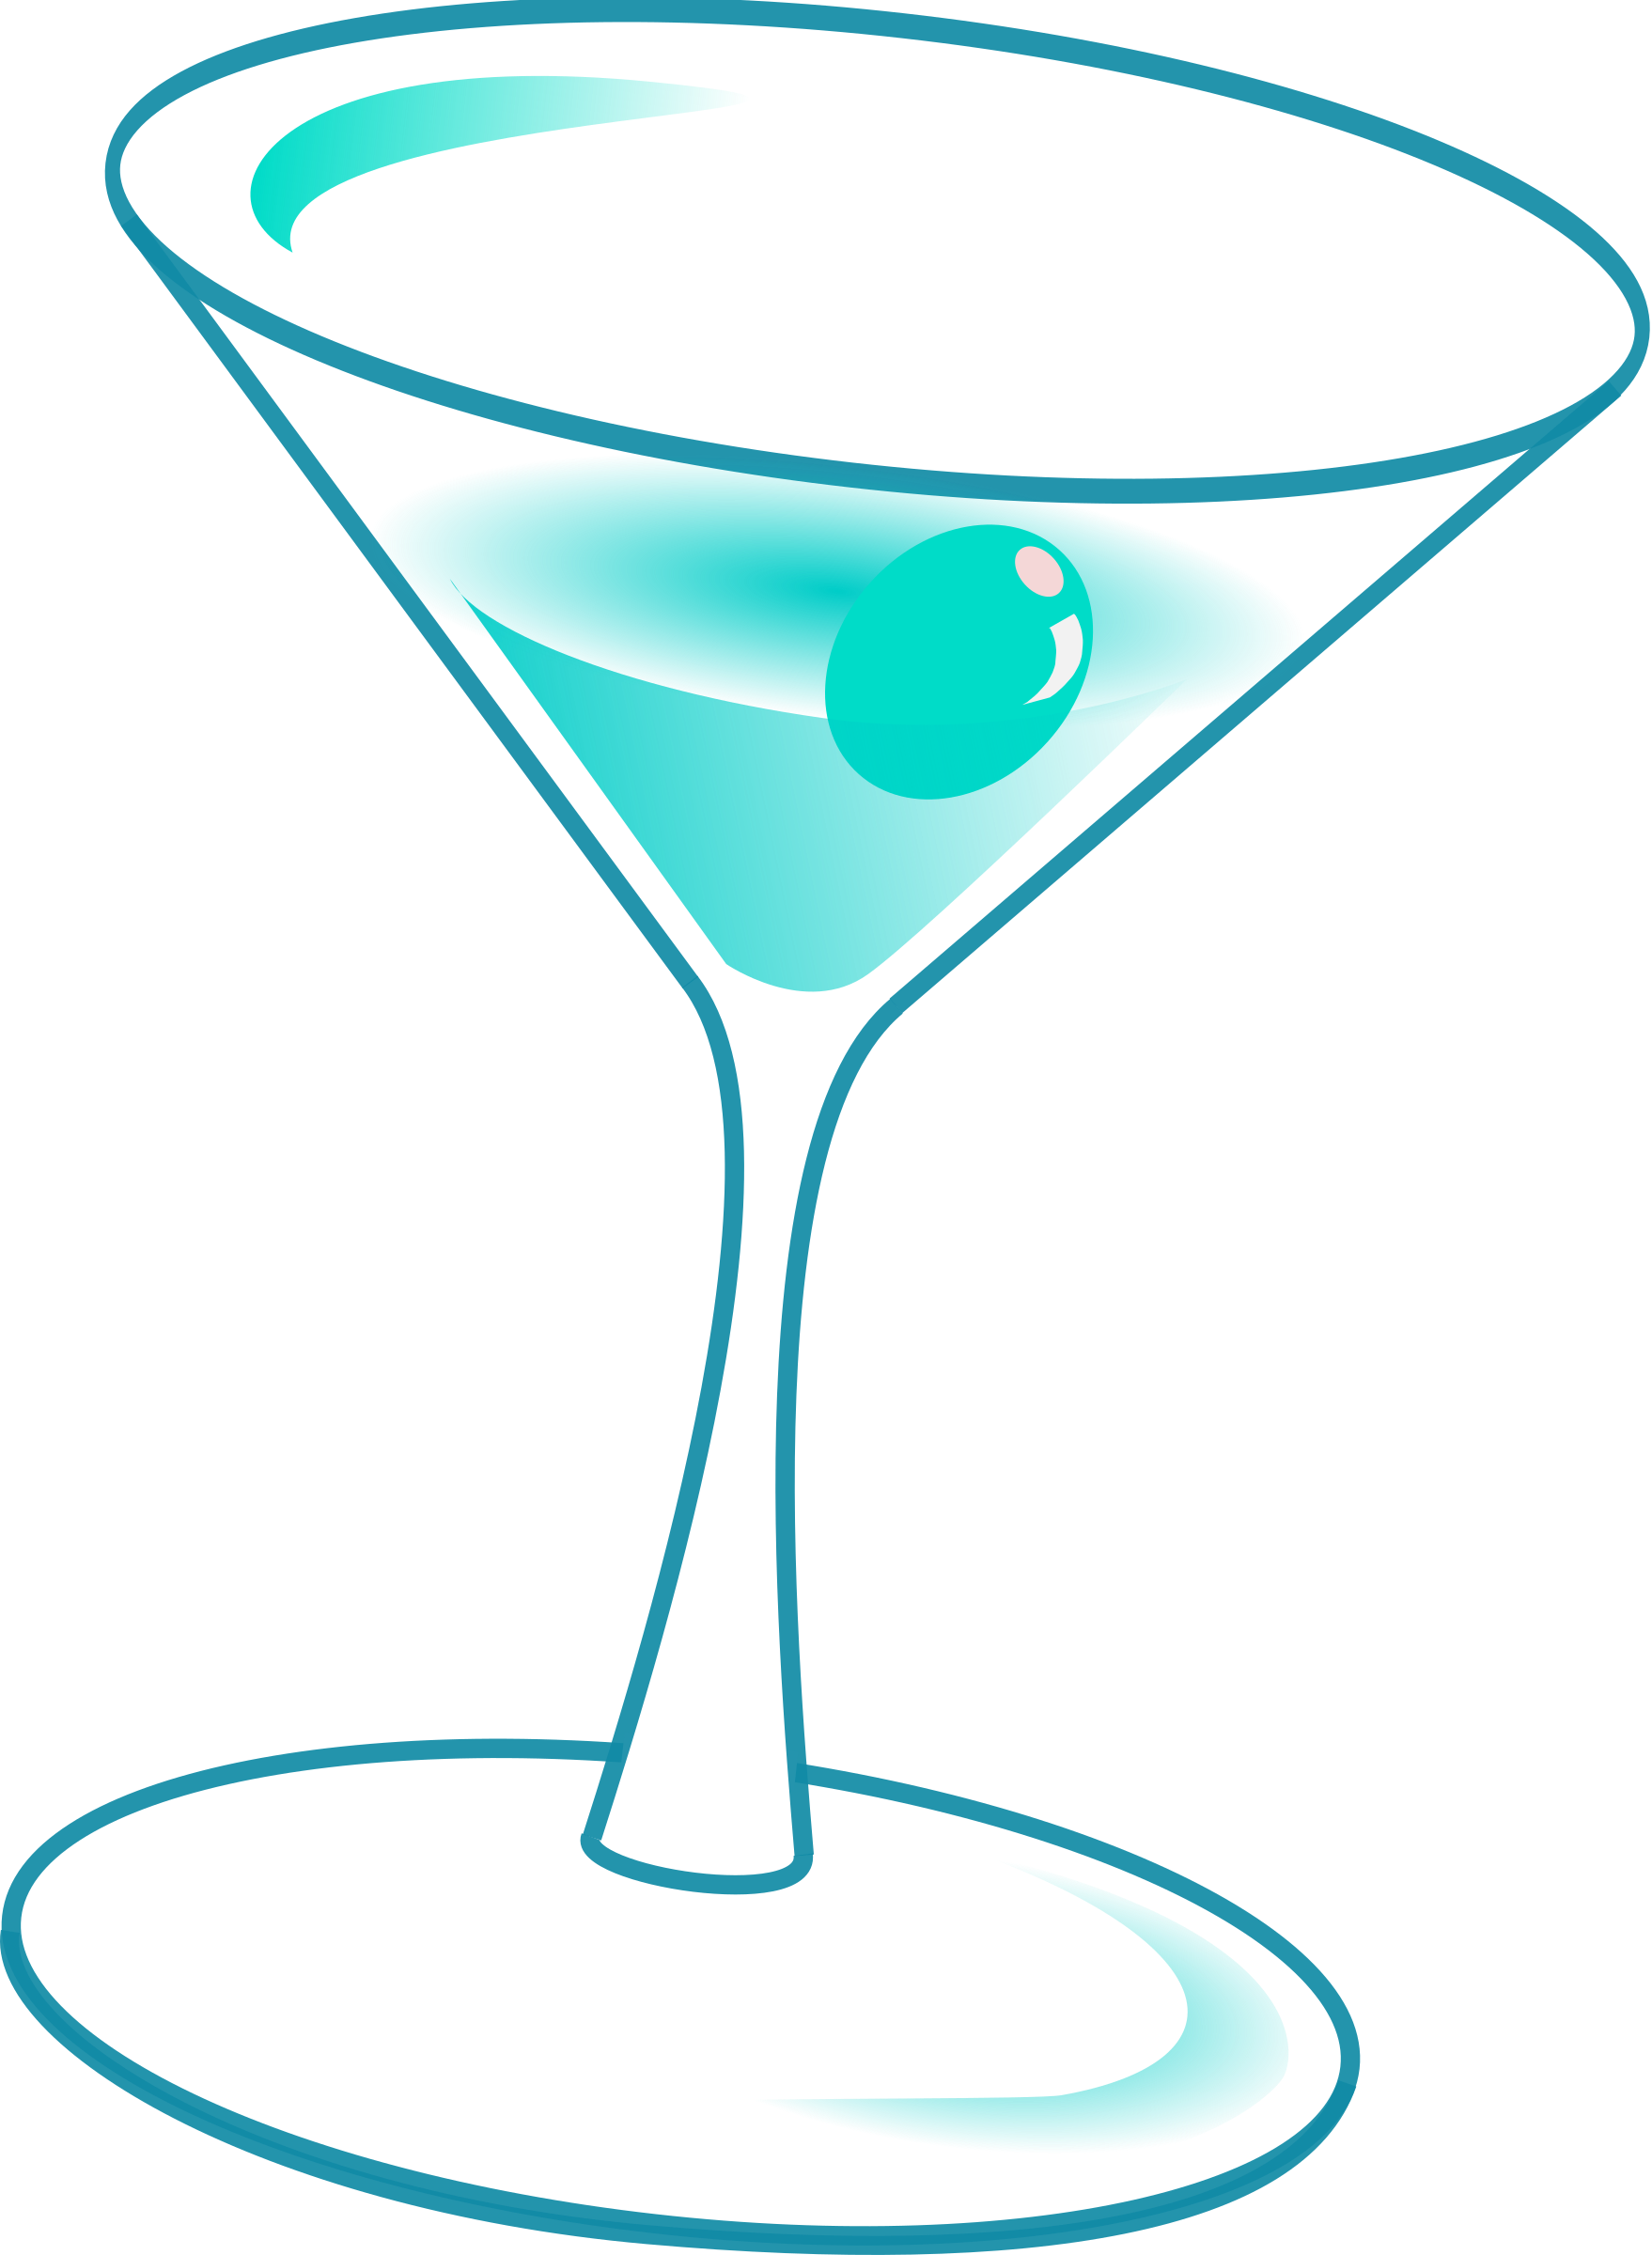 Happy hour big image. Cocktail clipart party drink